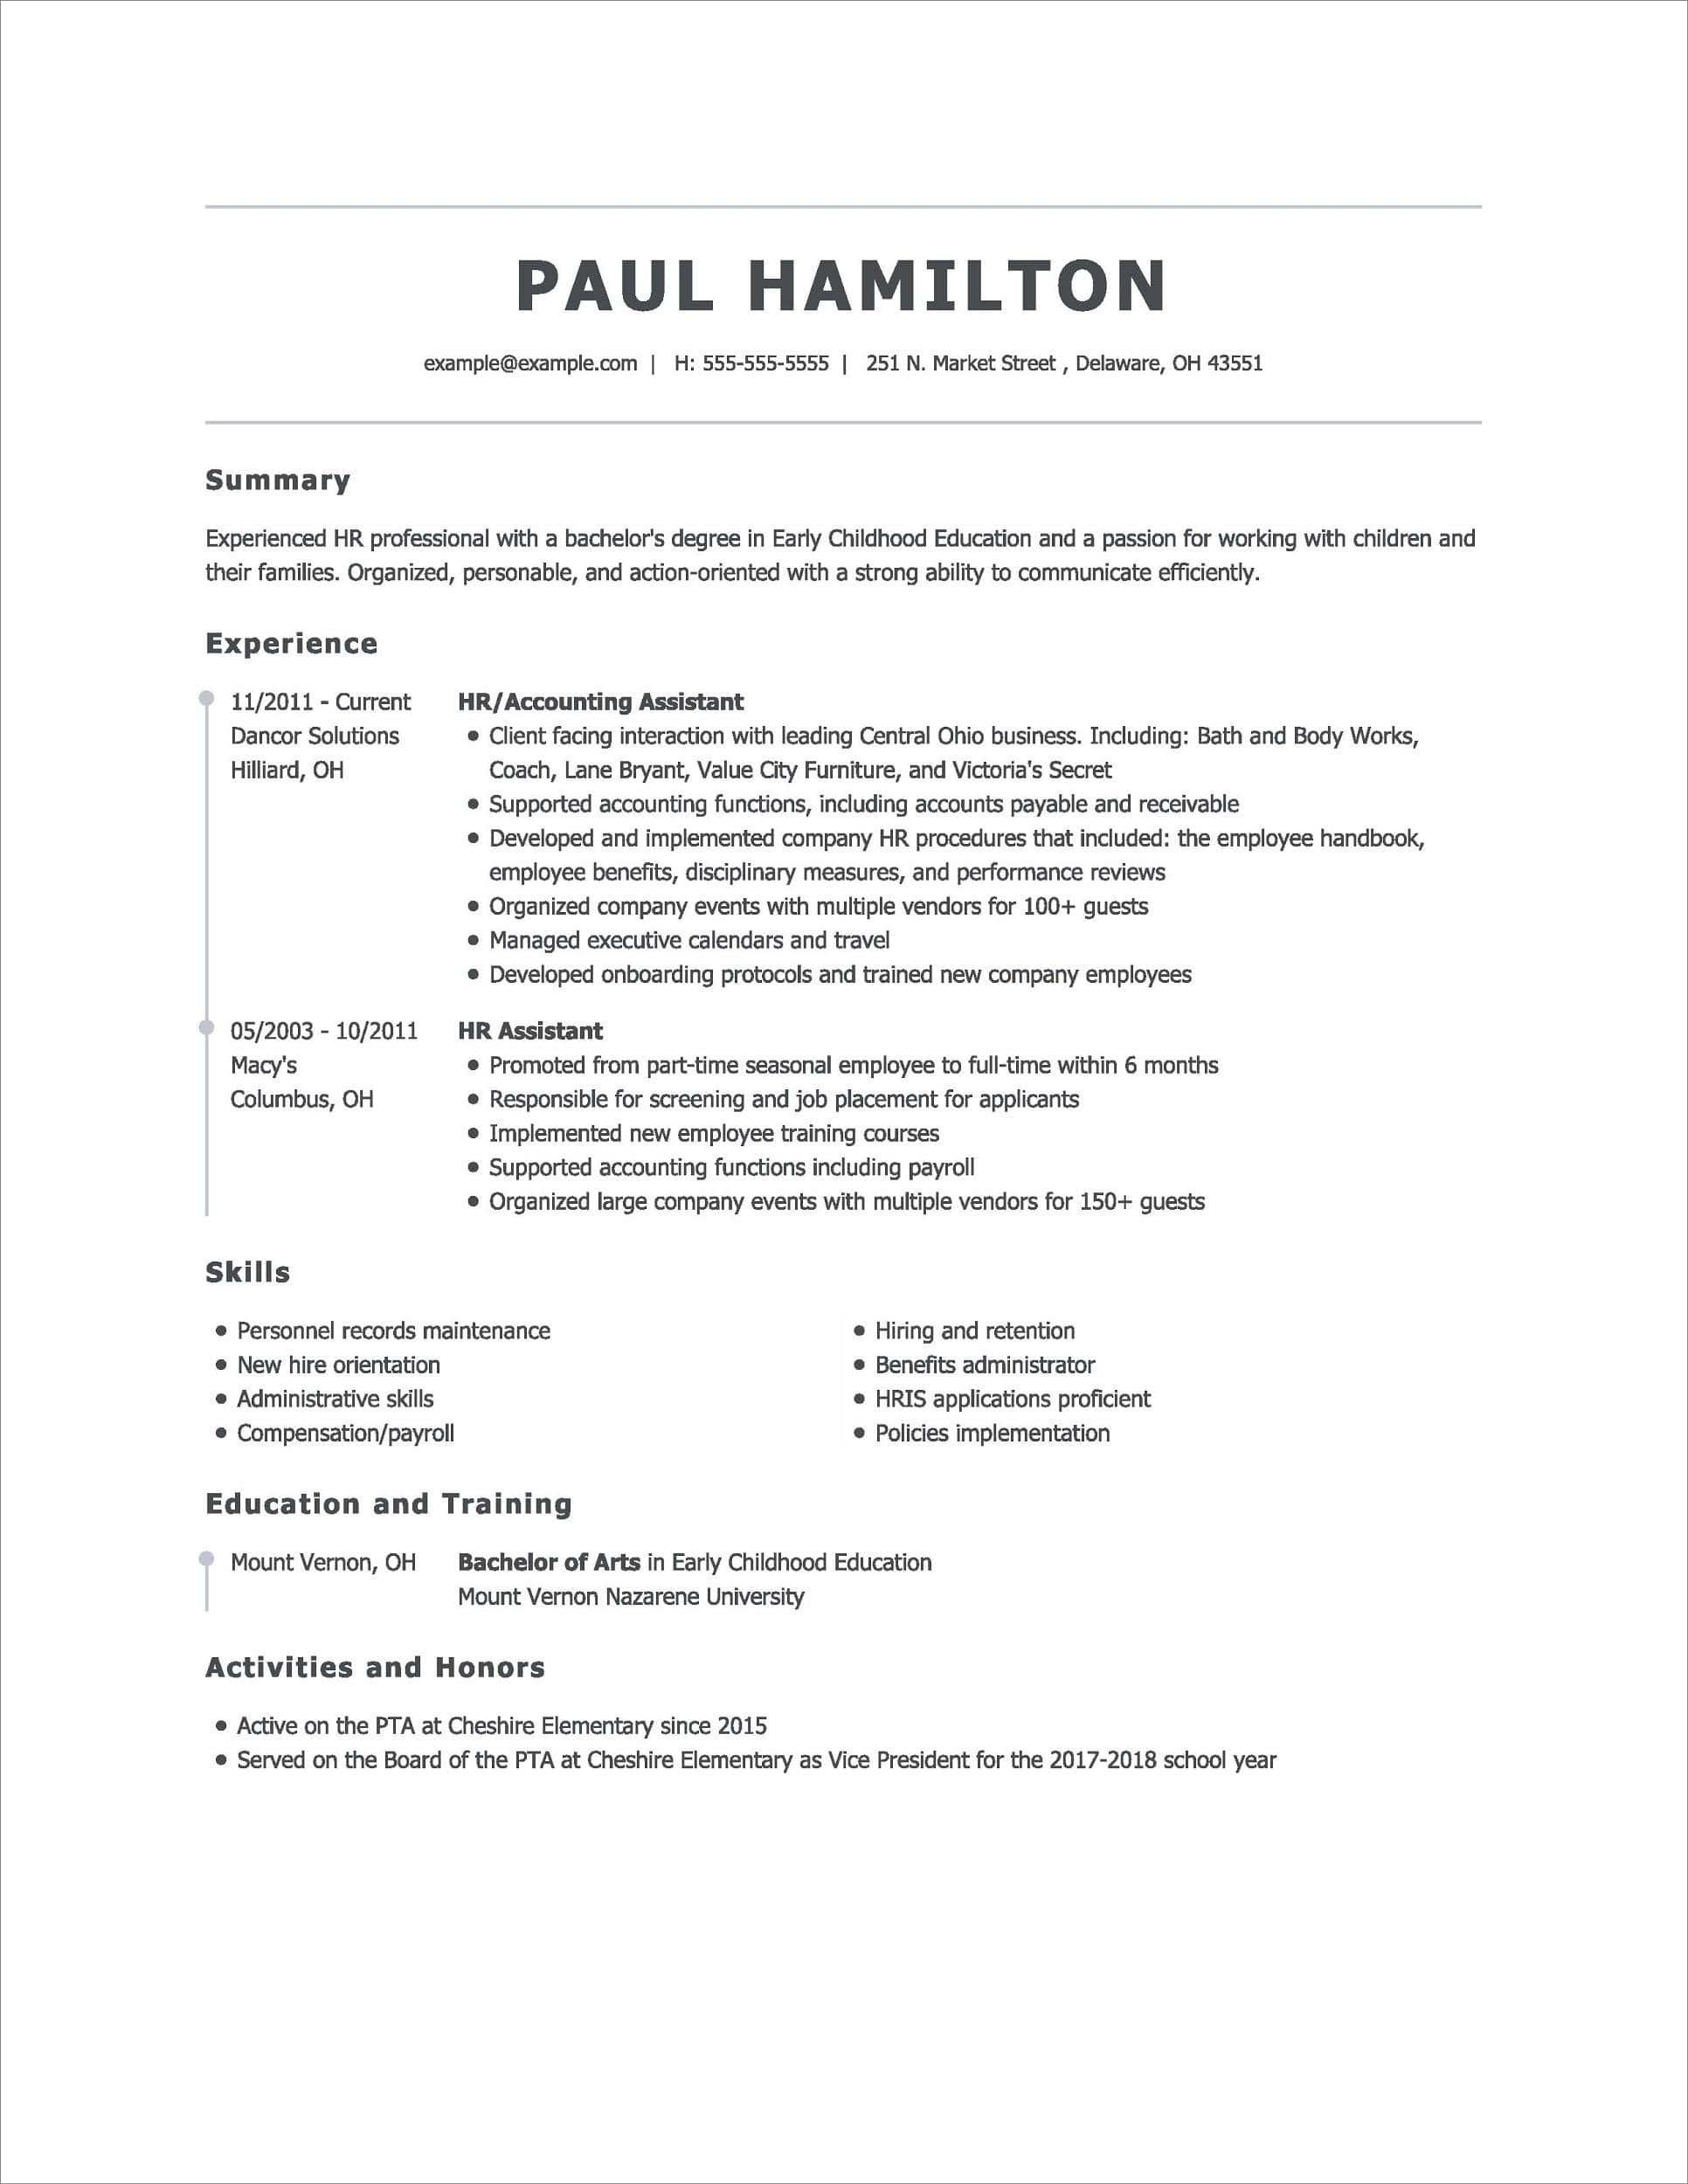 best resume builders free paid features making data center operator stocking skills for Resume Best Resume Making Online